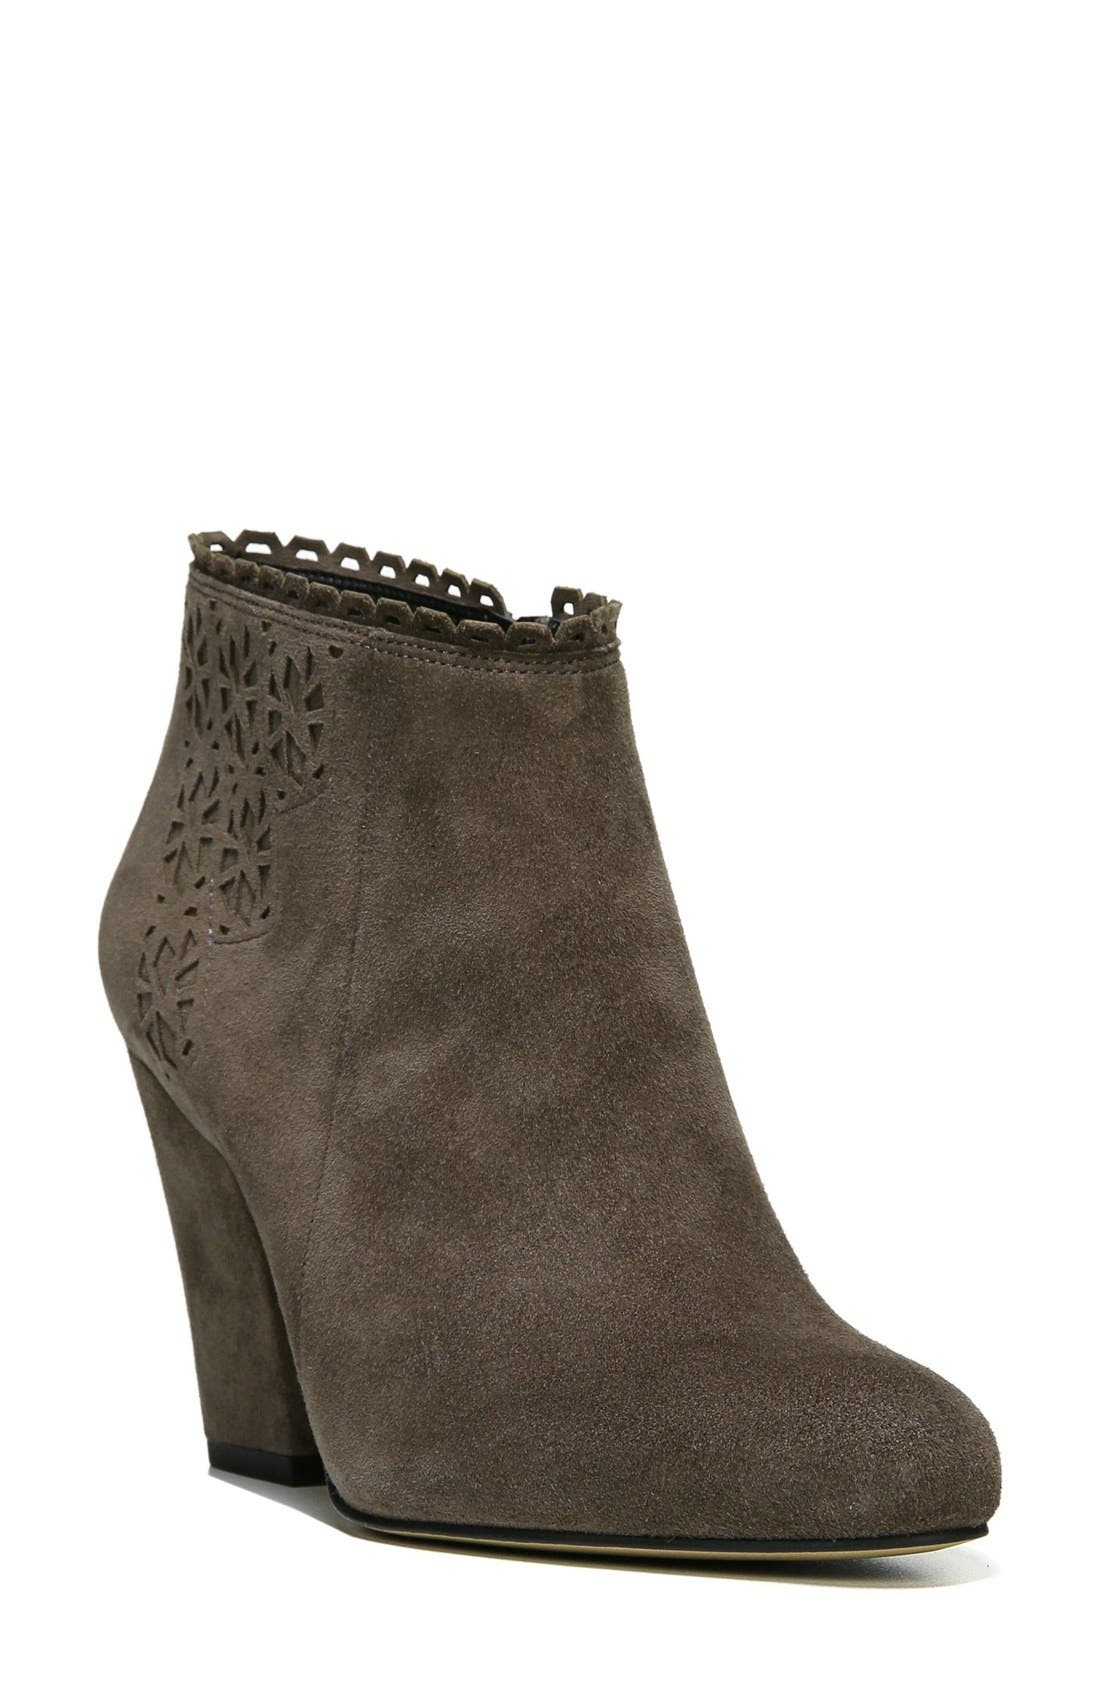 Alternate Image 1 Selected - SARTO by Franco Sarto Fairy Bootie (Women)